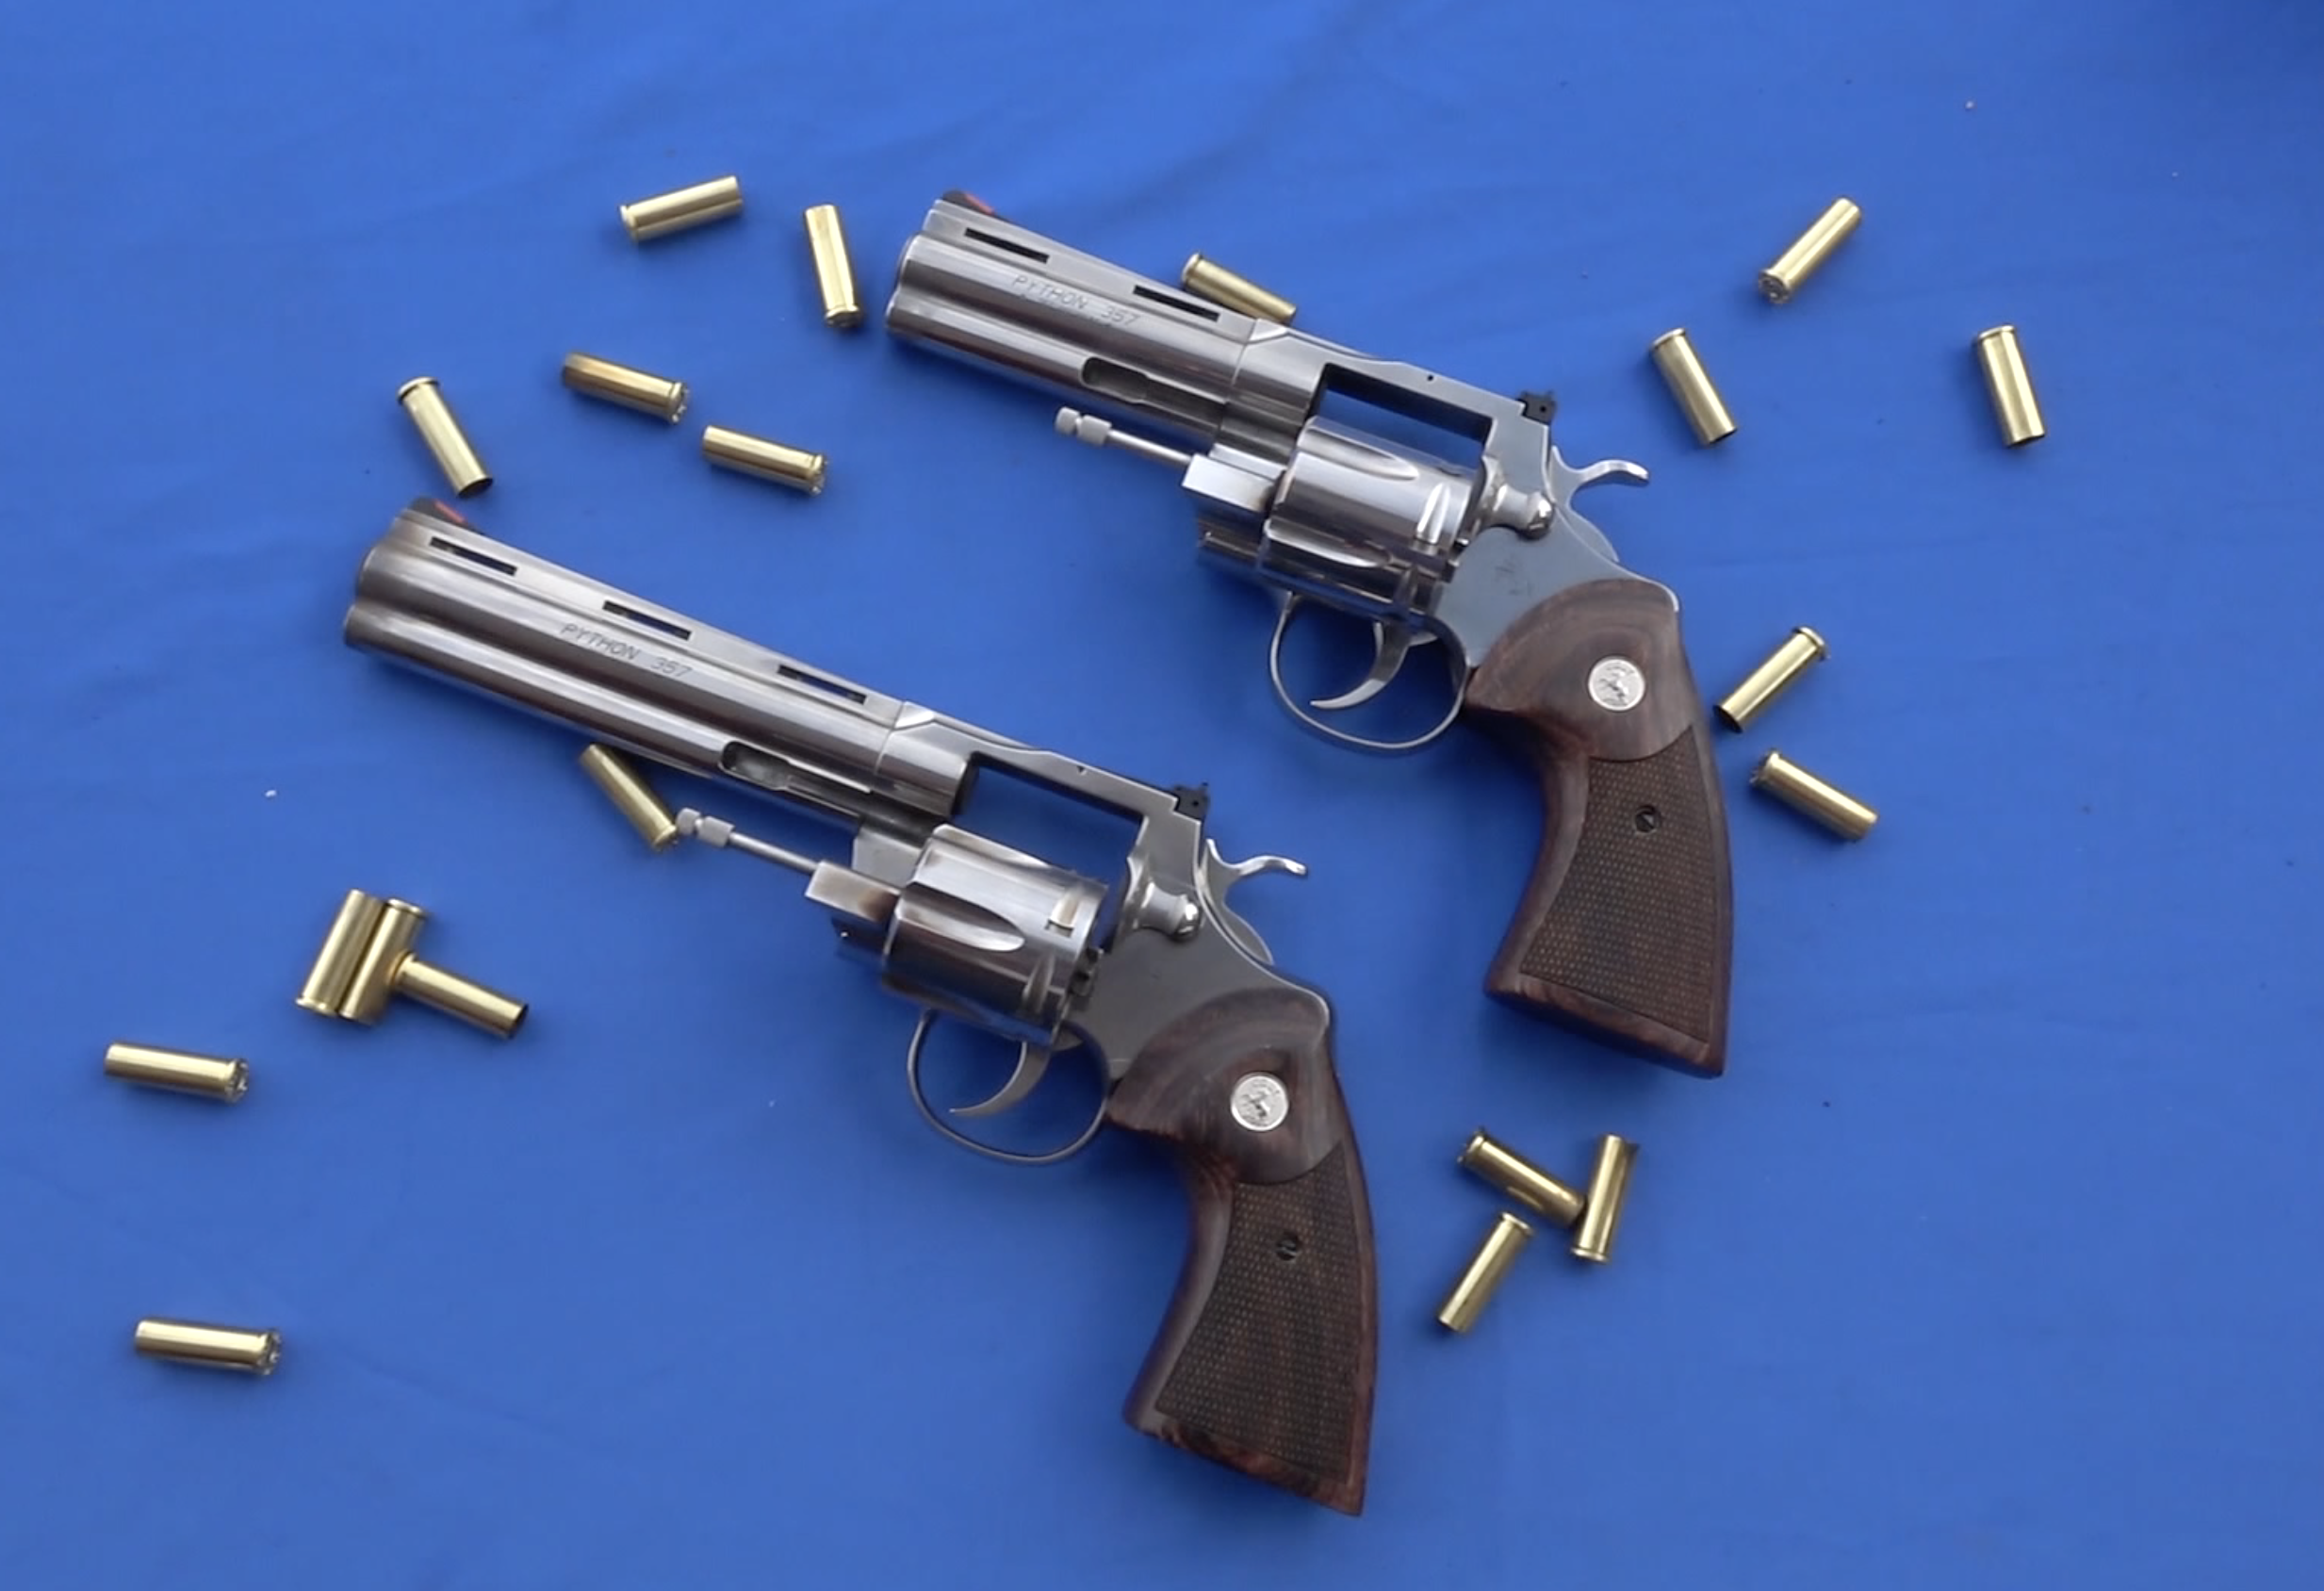 two Colt Python revolvers, one 6-inch barrel and one 4.25-inch barrel, with the wheels open on a blue background with empty cartridge cases